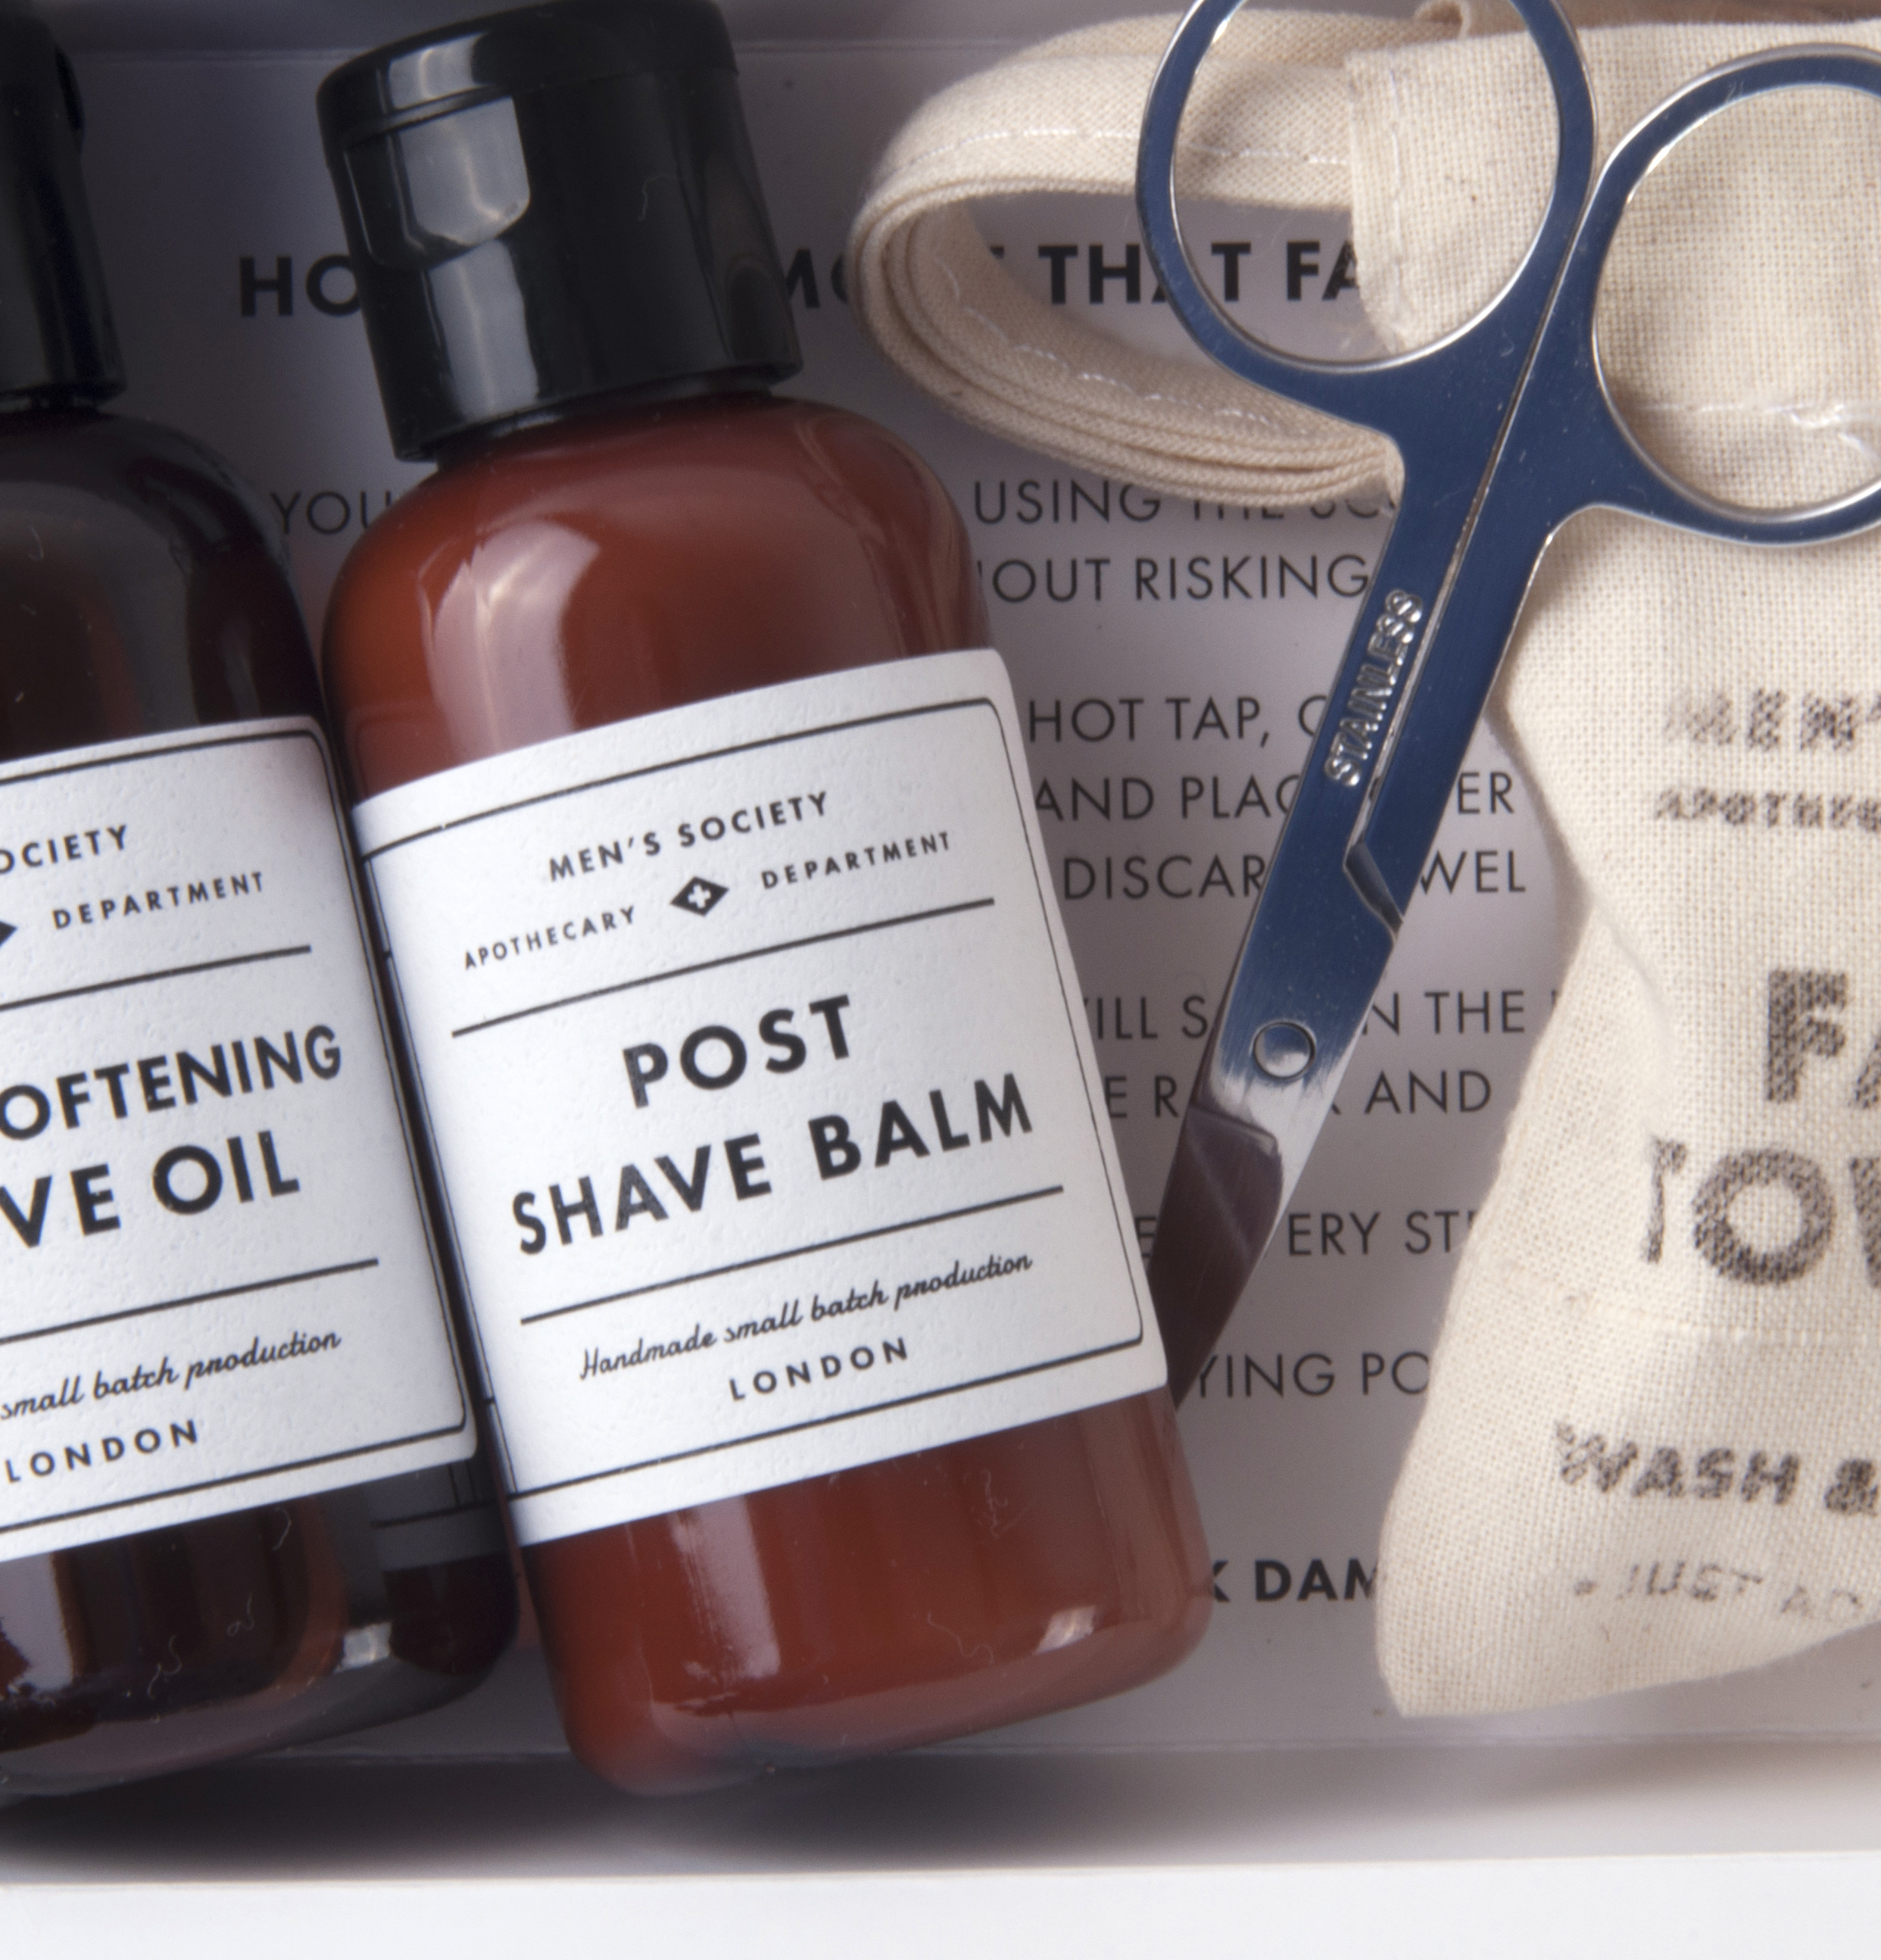 Beard Removal Kit - Handmade Small Batch Production from The Men's Society  Apothecary Department